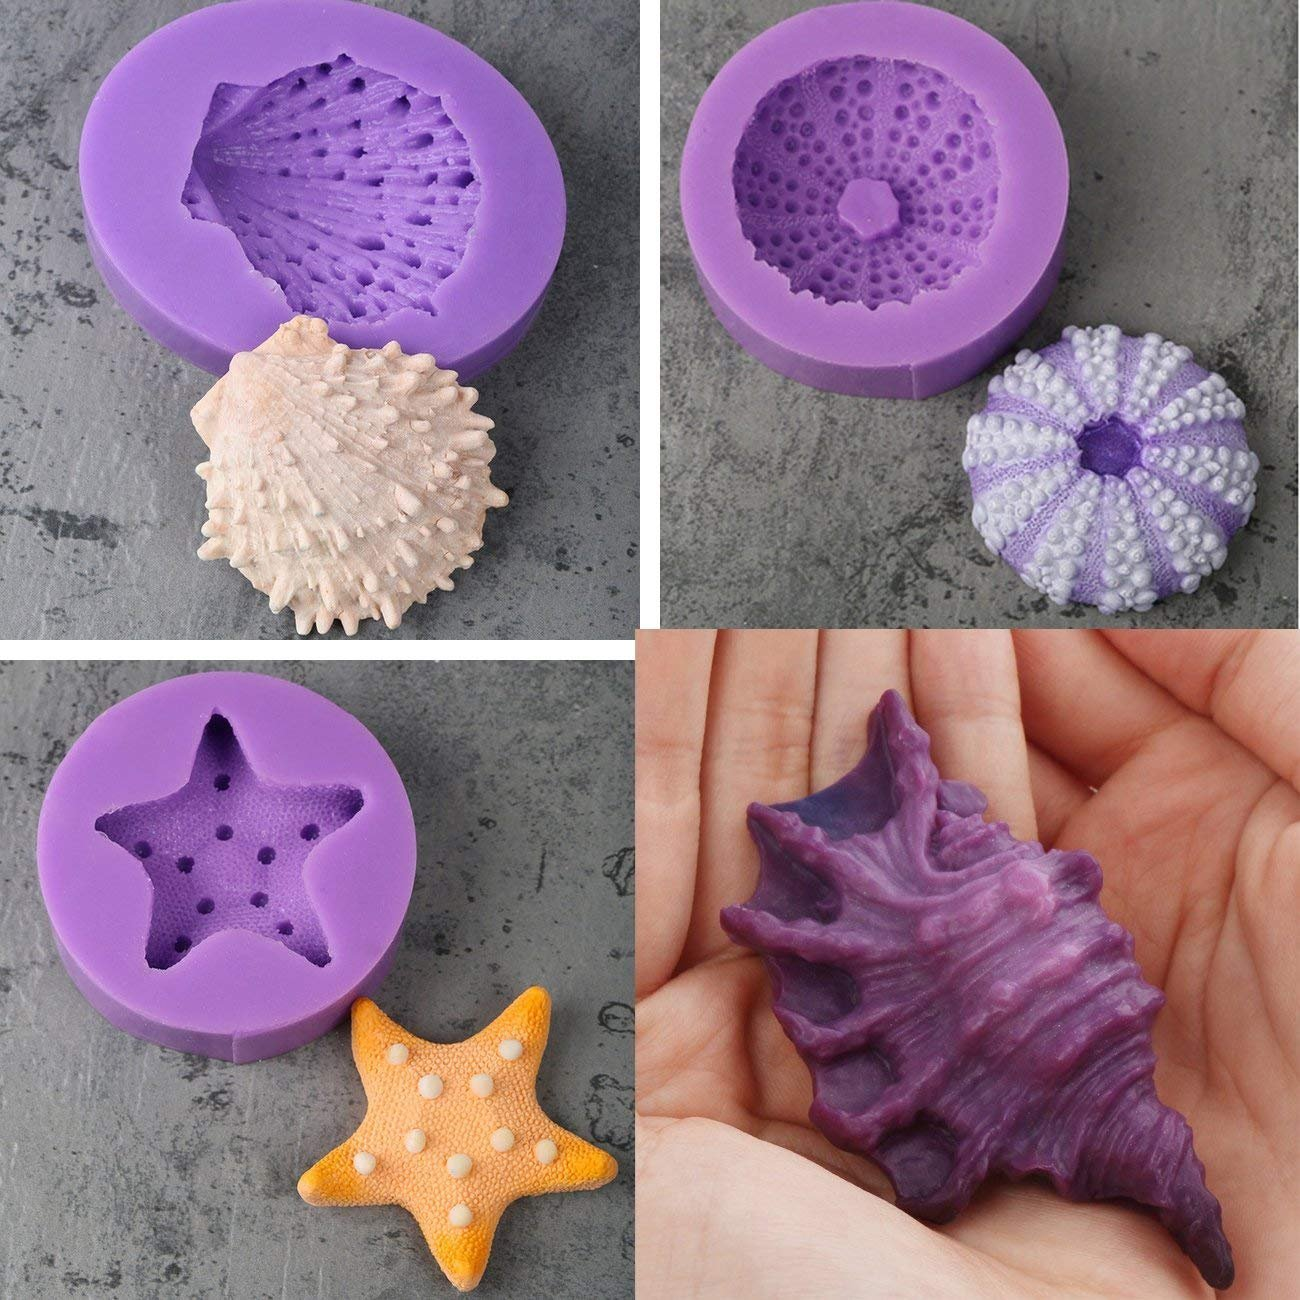 Anyana Seashell Starfish Sea Urchin Seagull mold Fondant silicone Mould for gum paste Sugar paste cake decorating cupcake topper decor set of 7pcs by Anyana (Image #7)